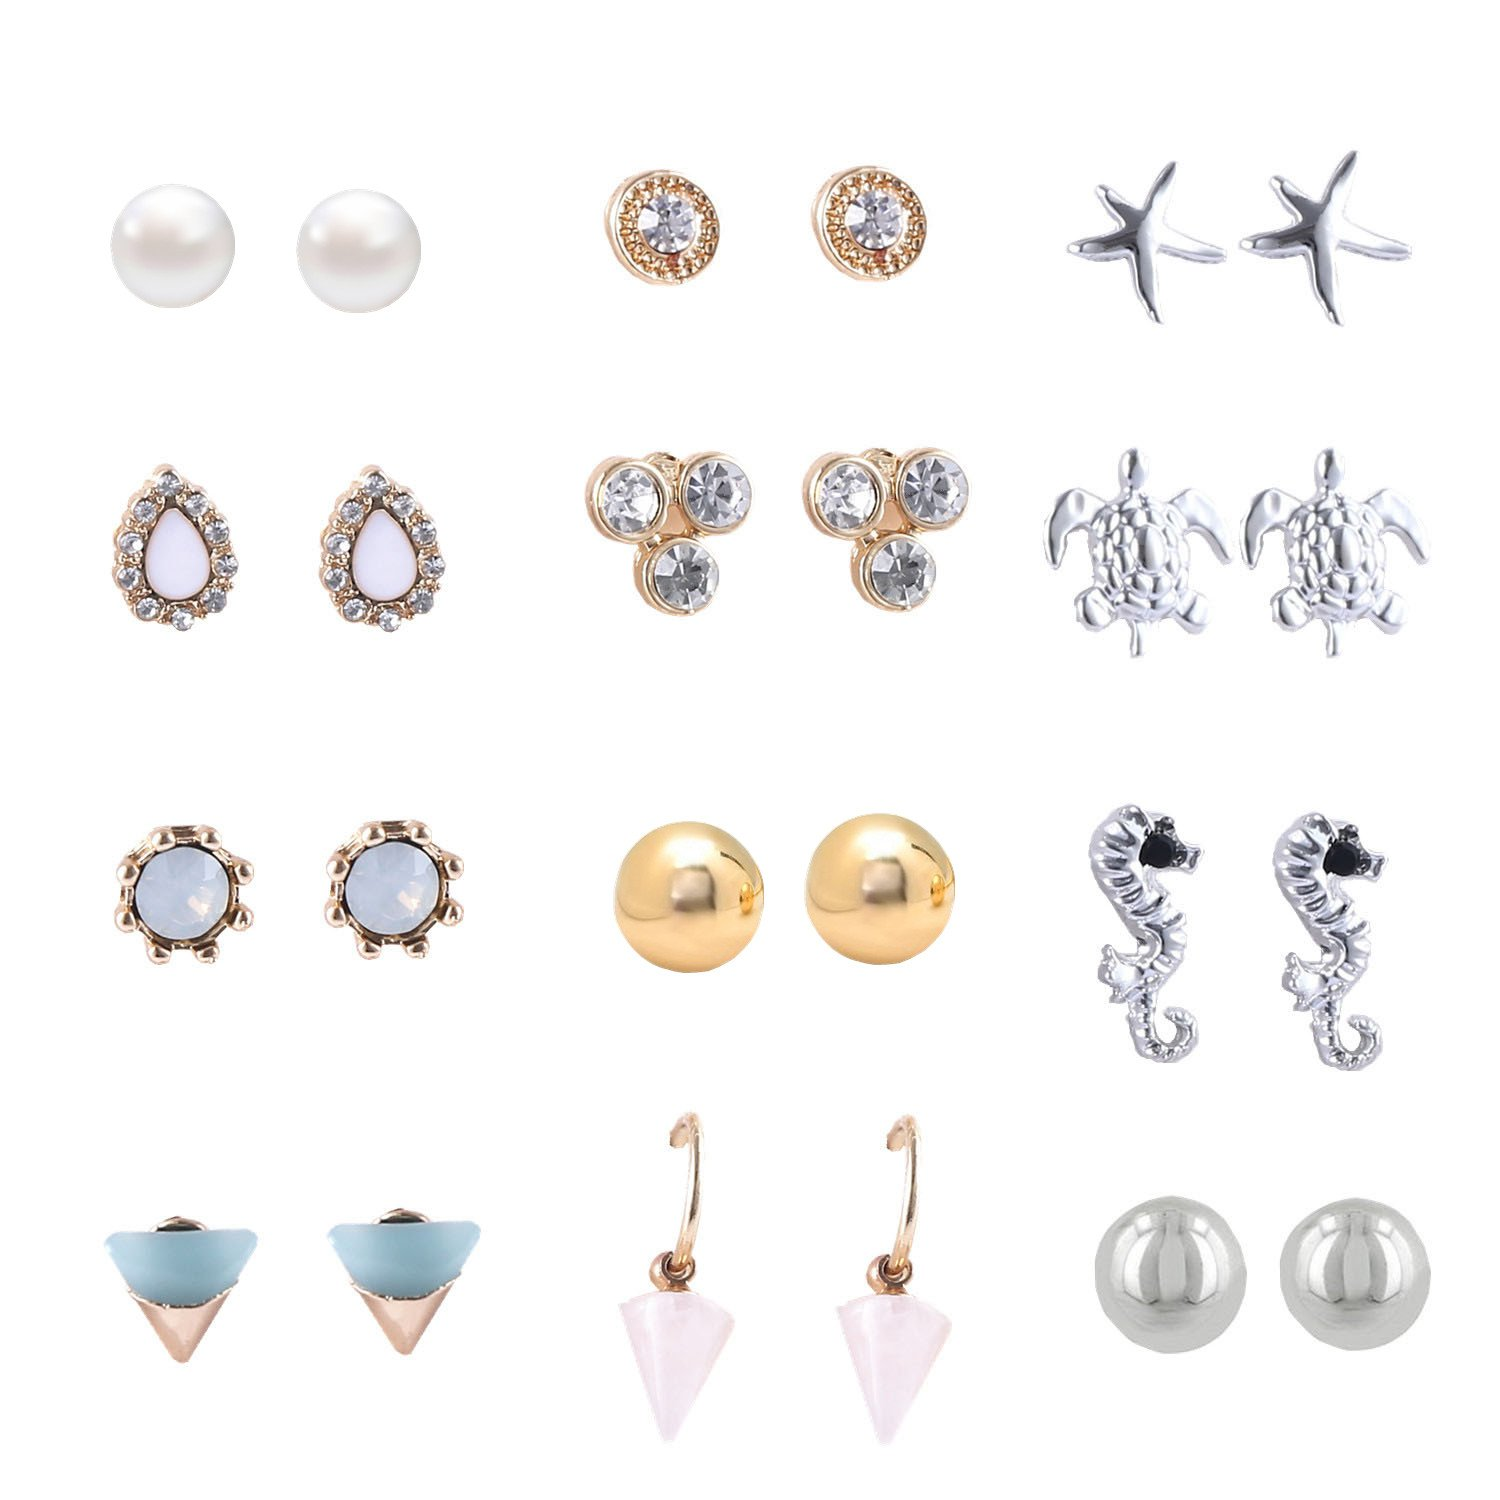 Women's Girl's Assorted Multiple Stud Earring 12 Style Sets DF-039